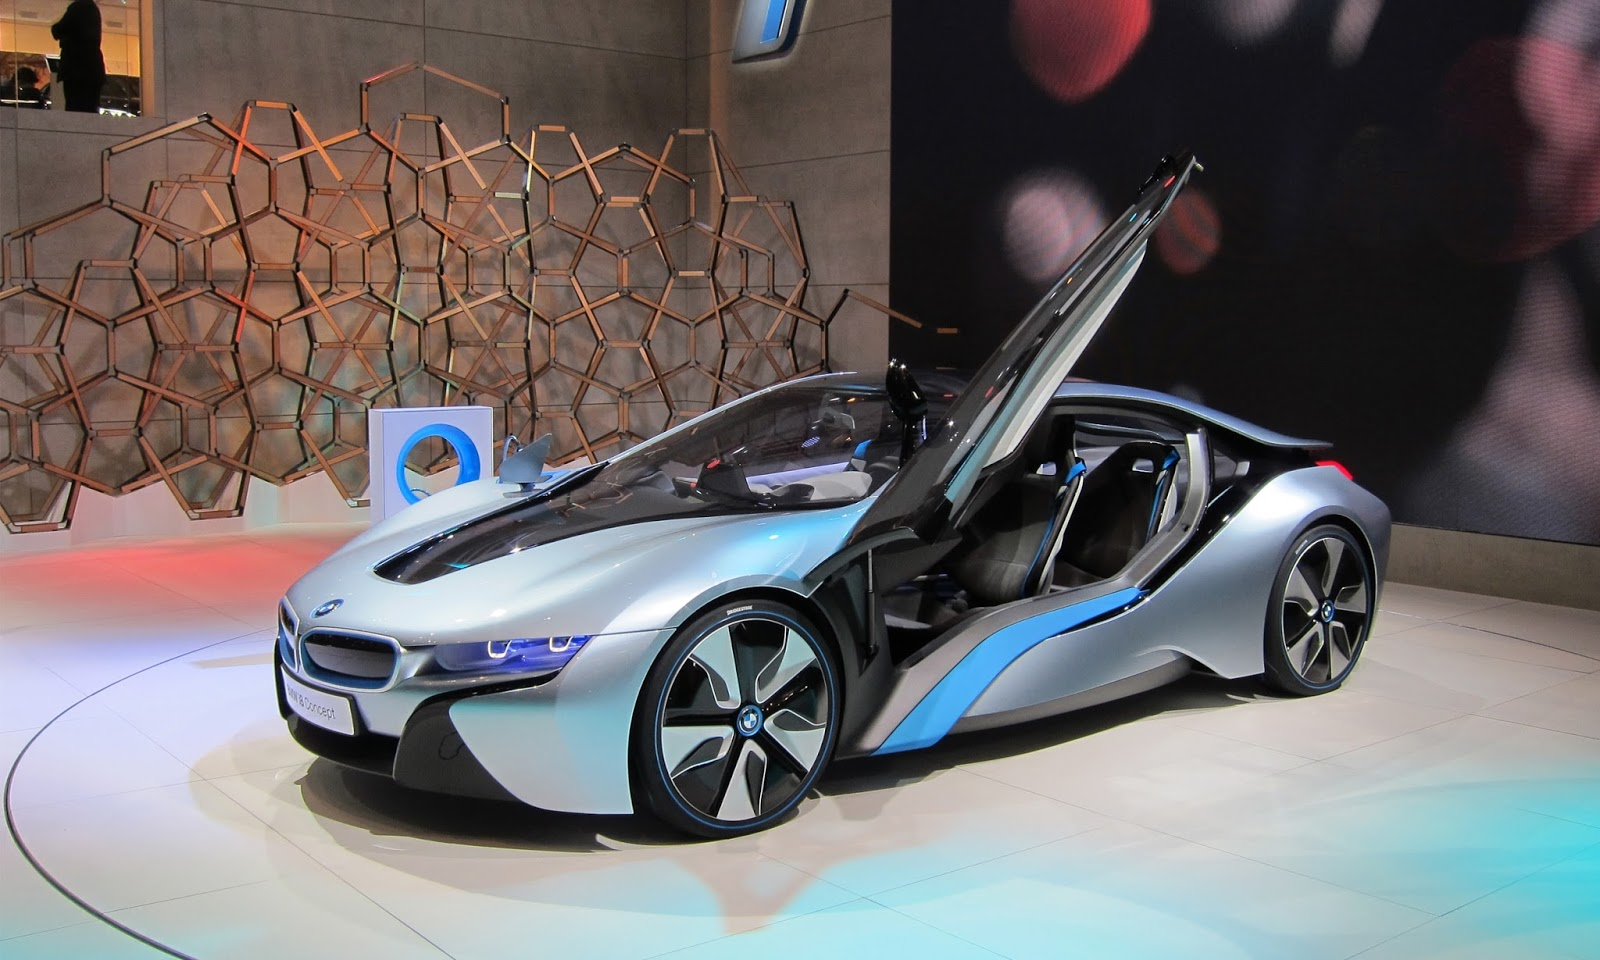 Cars 2 Wallpaper Lightning Mcqueen Bmw I8 Hd Wallpapers Hd Wallpapers High Definition